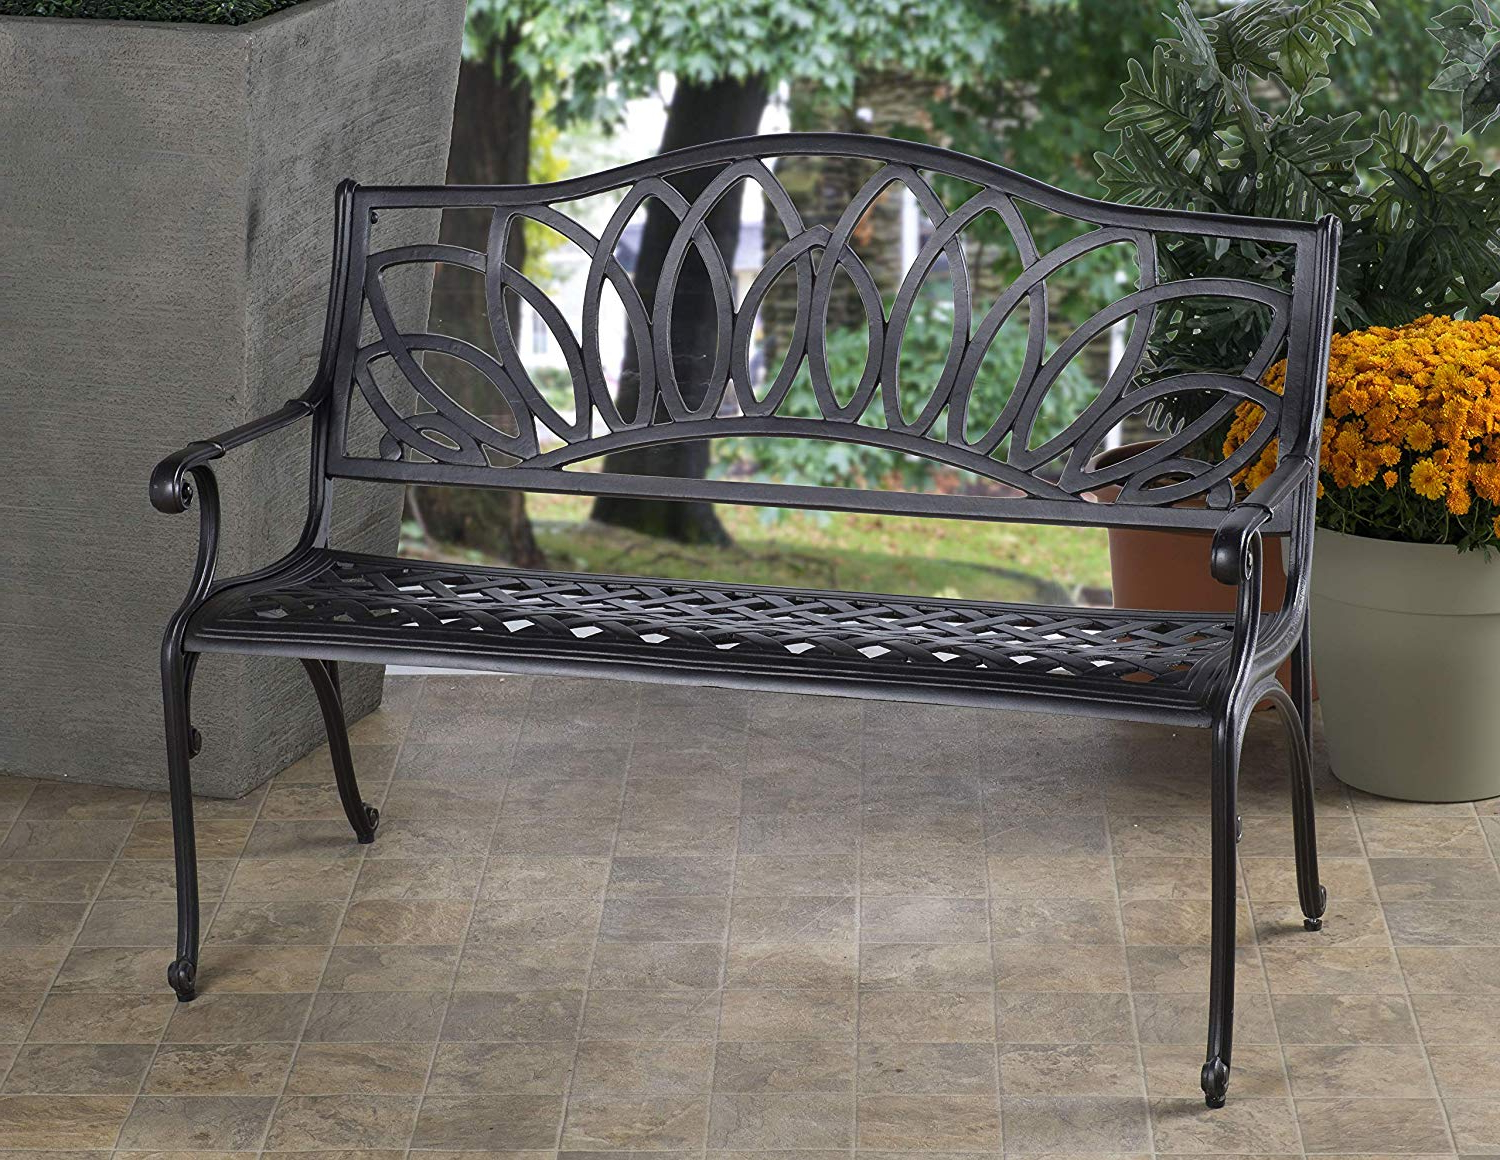 Famous Alfresco Home Cast Aluminum Daffodil Garden Bench, Aged Iron Pertaining To Iron Grove Slatted Glider Benches (View 21 of 30)